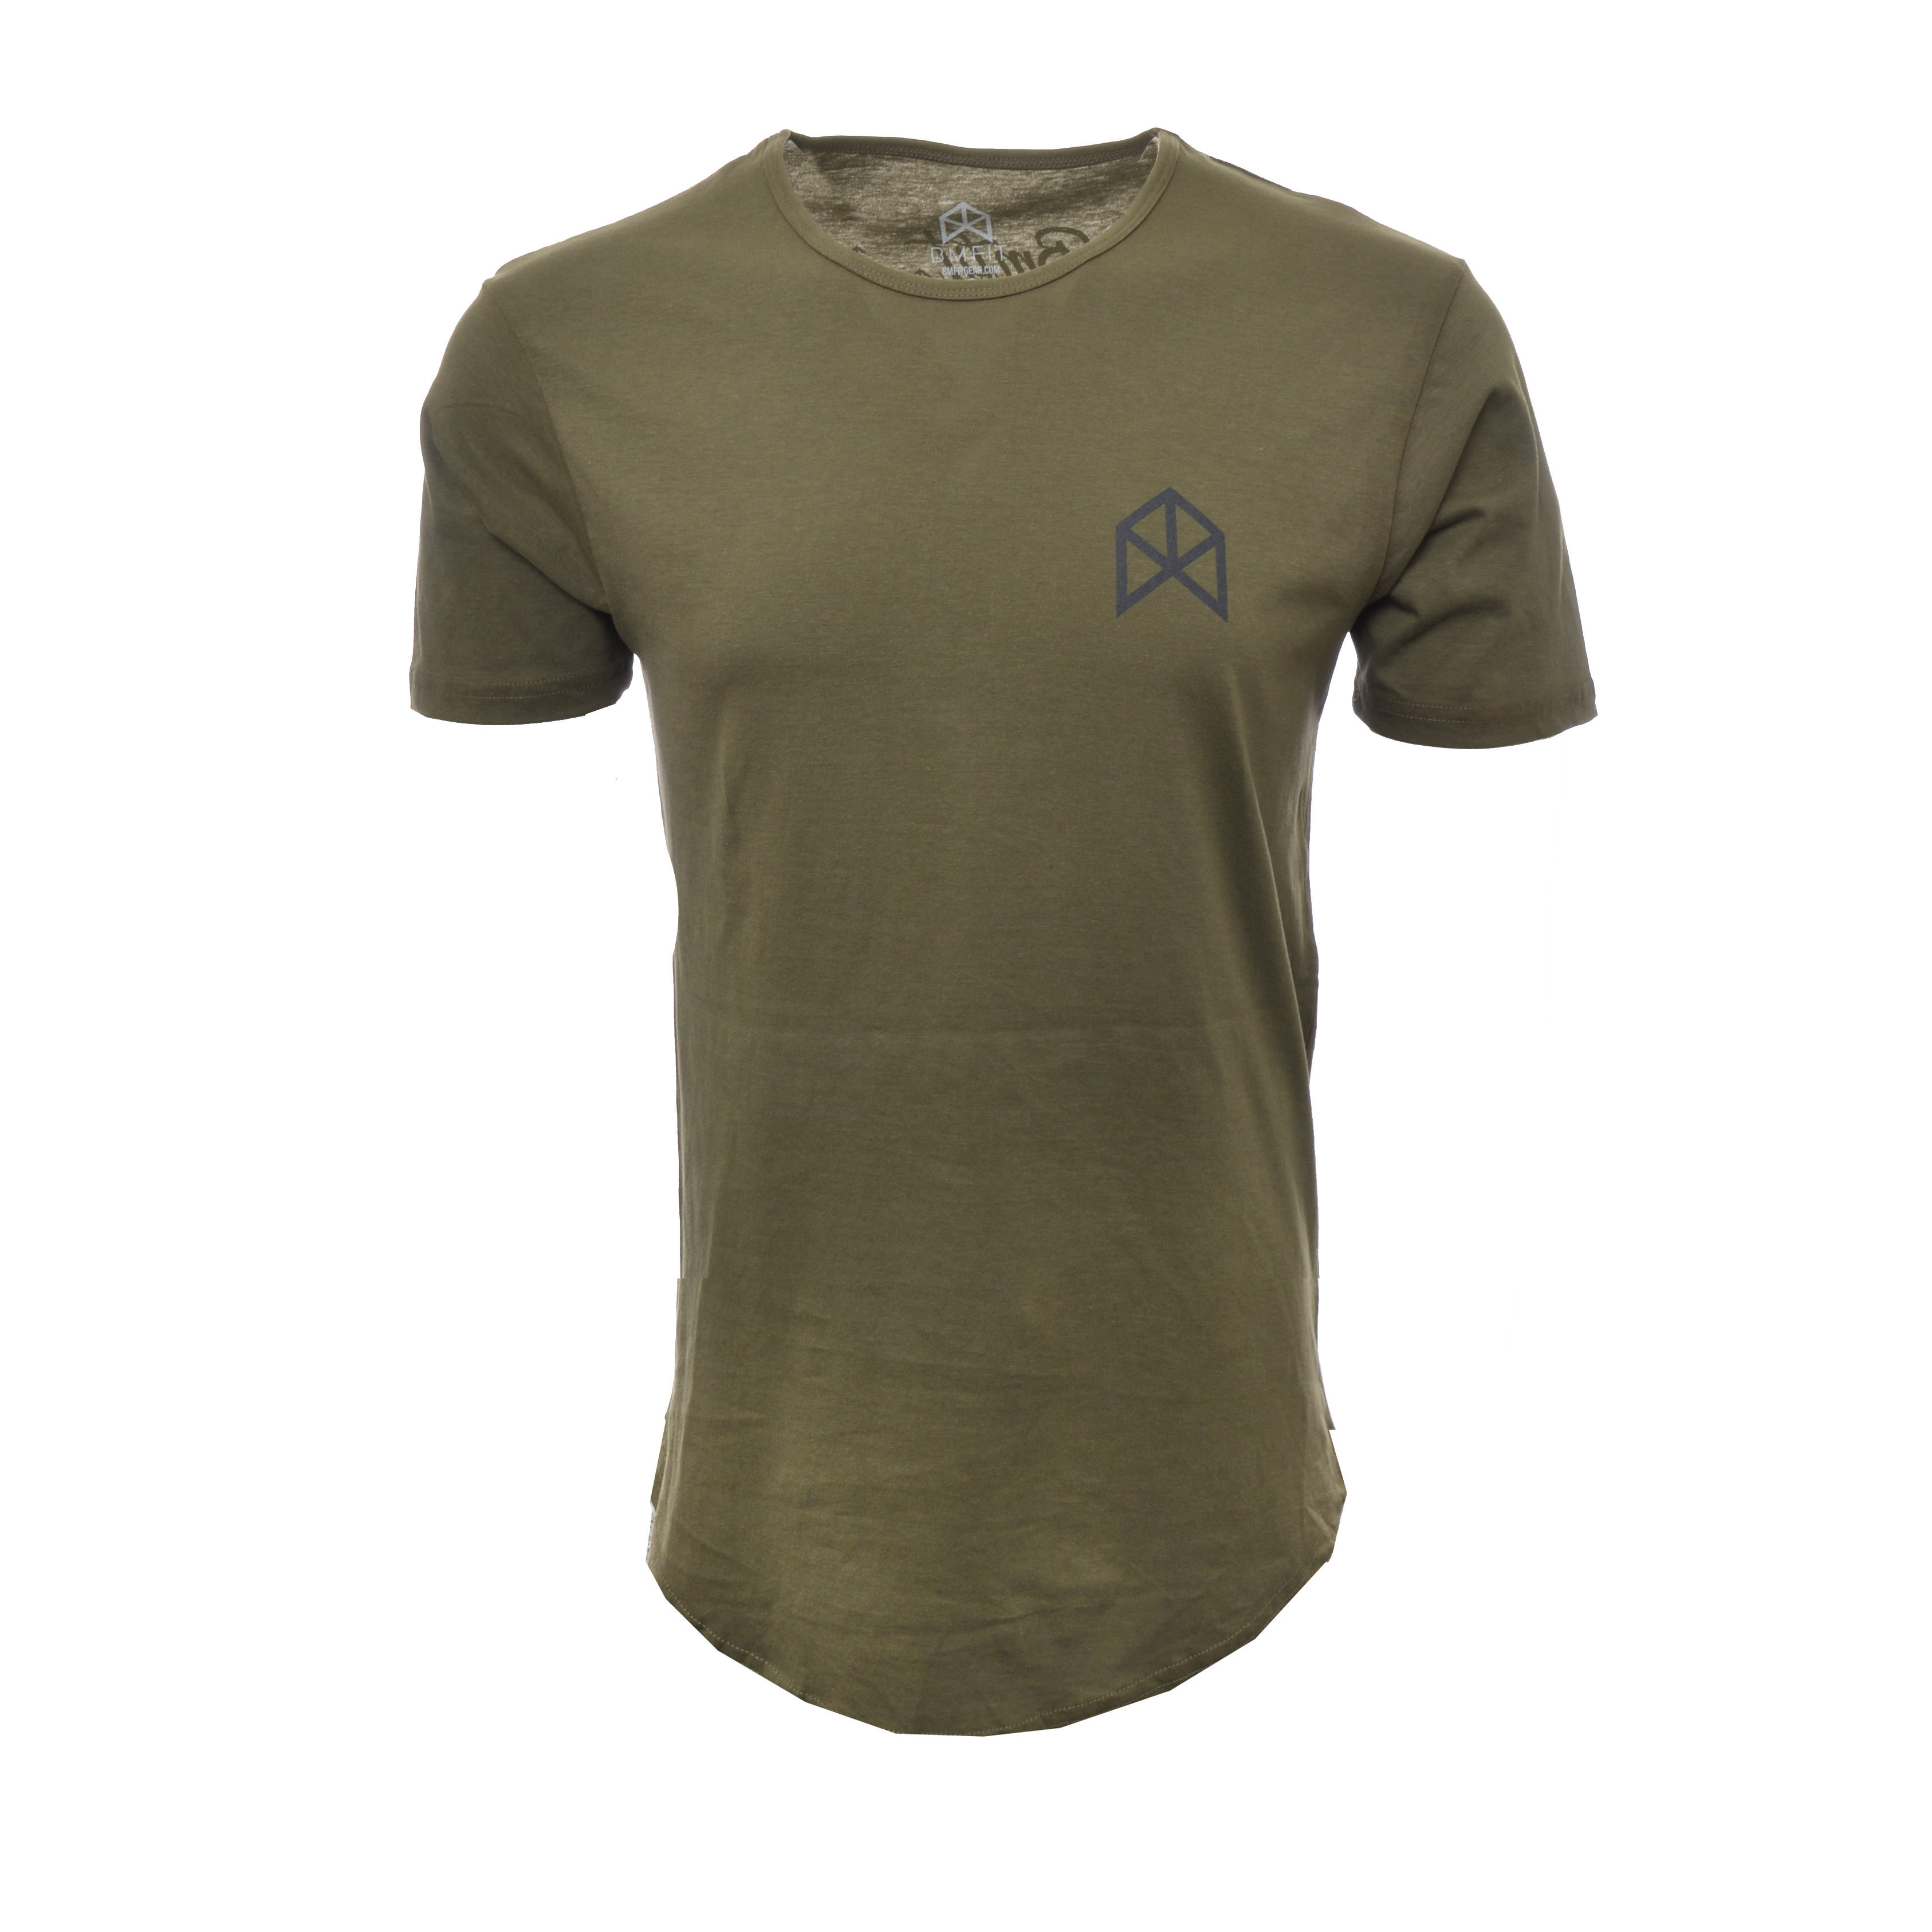 BMFIT Elongated Basic Tees - Olive